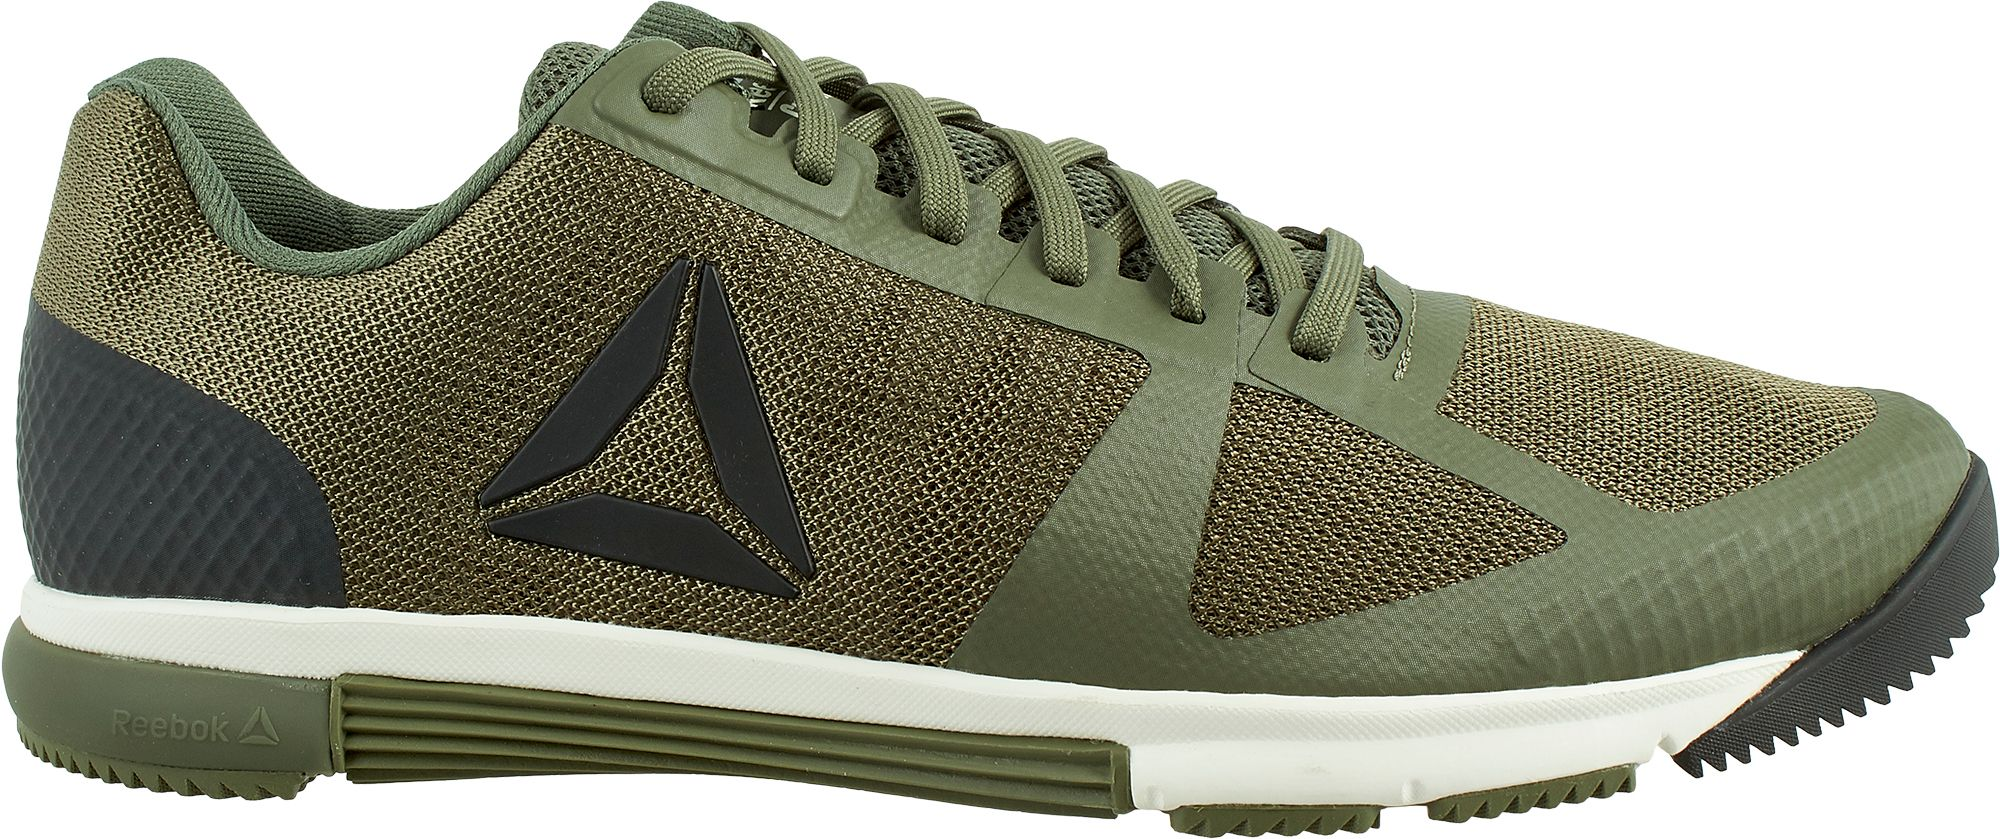 more photos d67d9 a235e Reebok Men s CrossFit Speed TR 2.0 Training Shoes   DICK S Sporting  GoodsProposition 65 warning iconProposition 65 warning icon